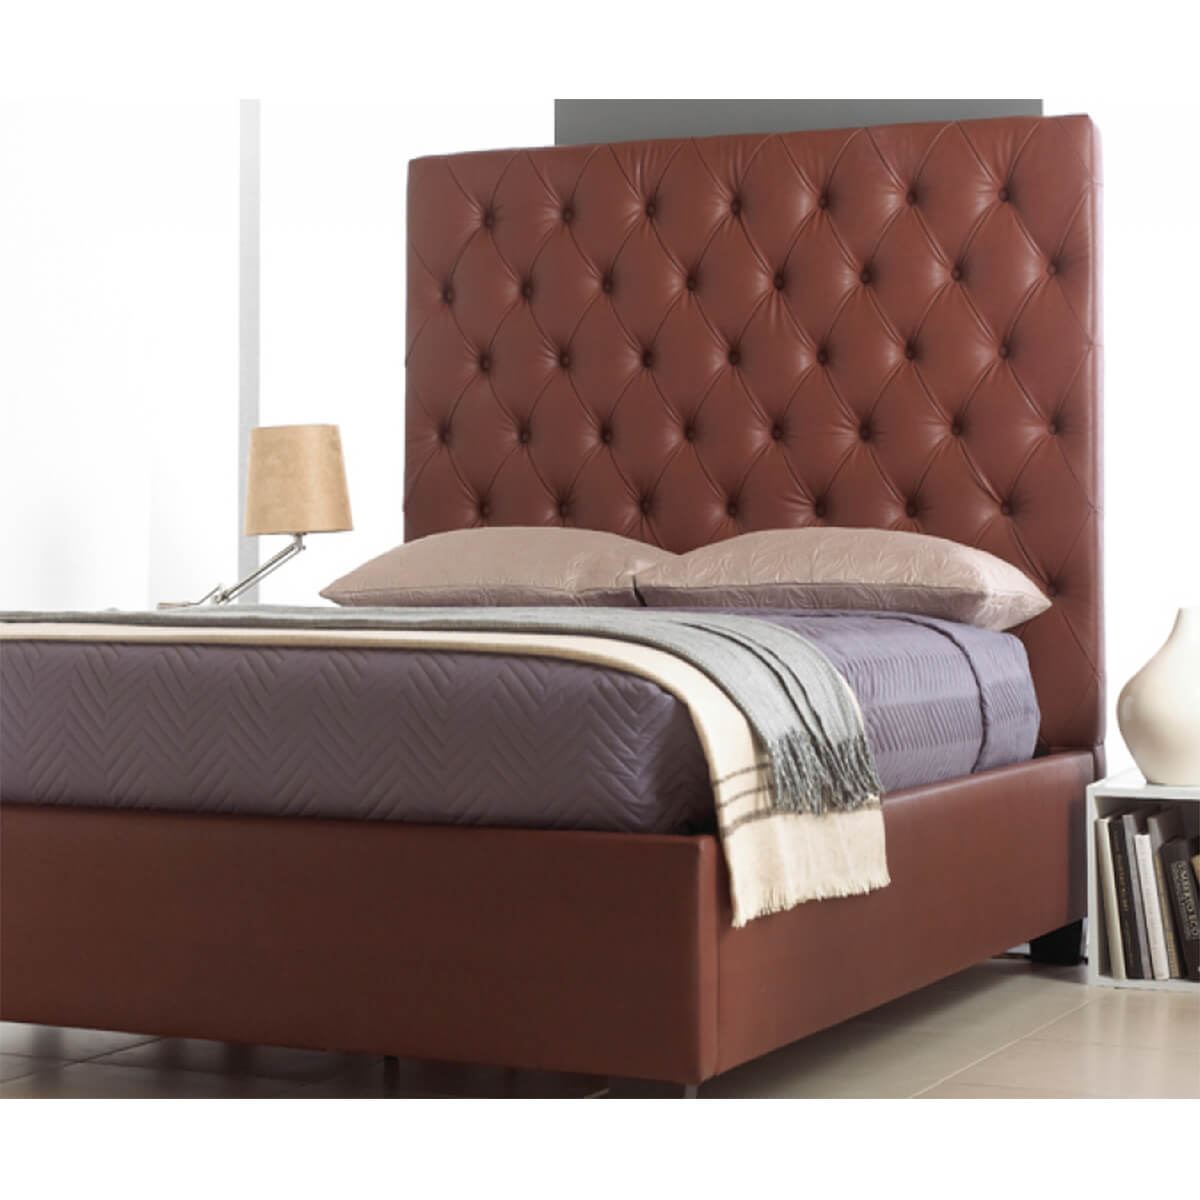 windsor tall headboard bed frame faux leather beds fads. Black Bedroom Furniture Sets. Home Design Ideas